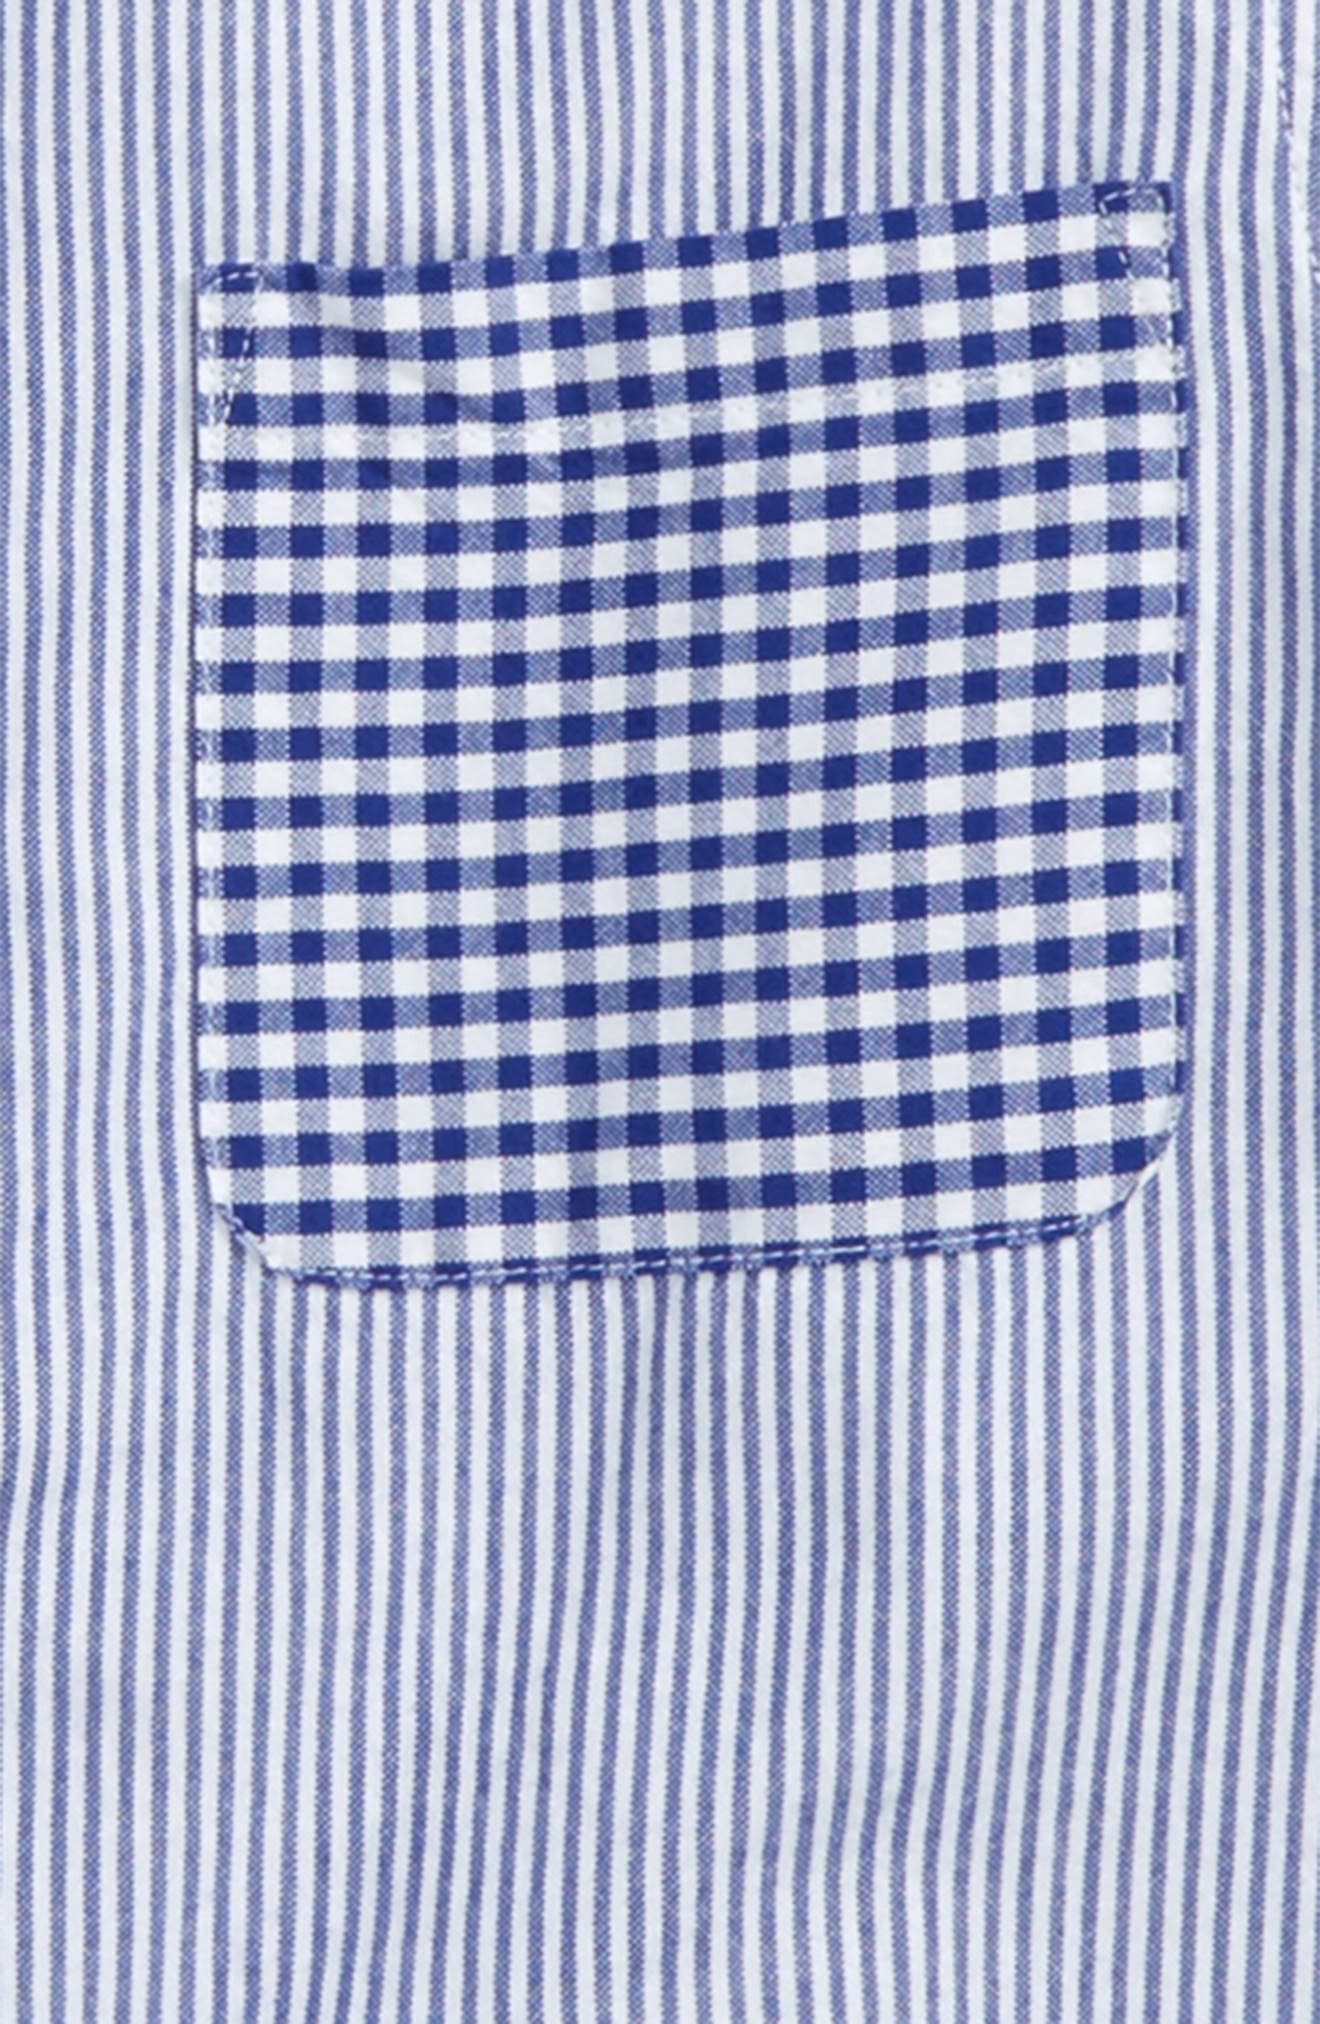 Hotchpotch Mixed Pattern Dress Shirt,                             Alternate thumbnail 3, color,                             Howlin Blue Hotchpotch